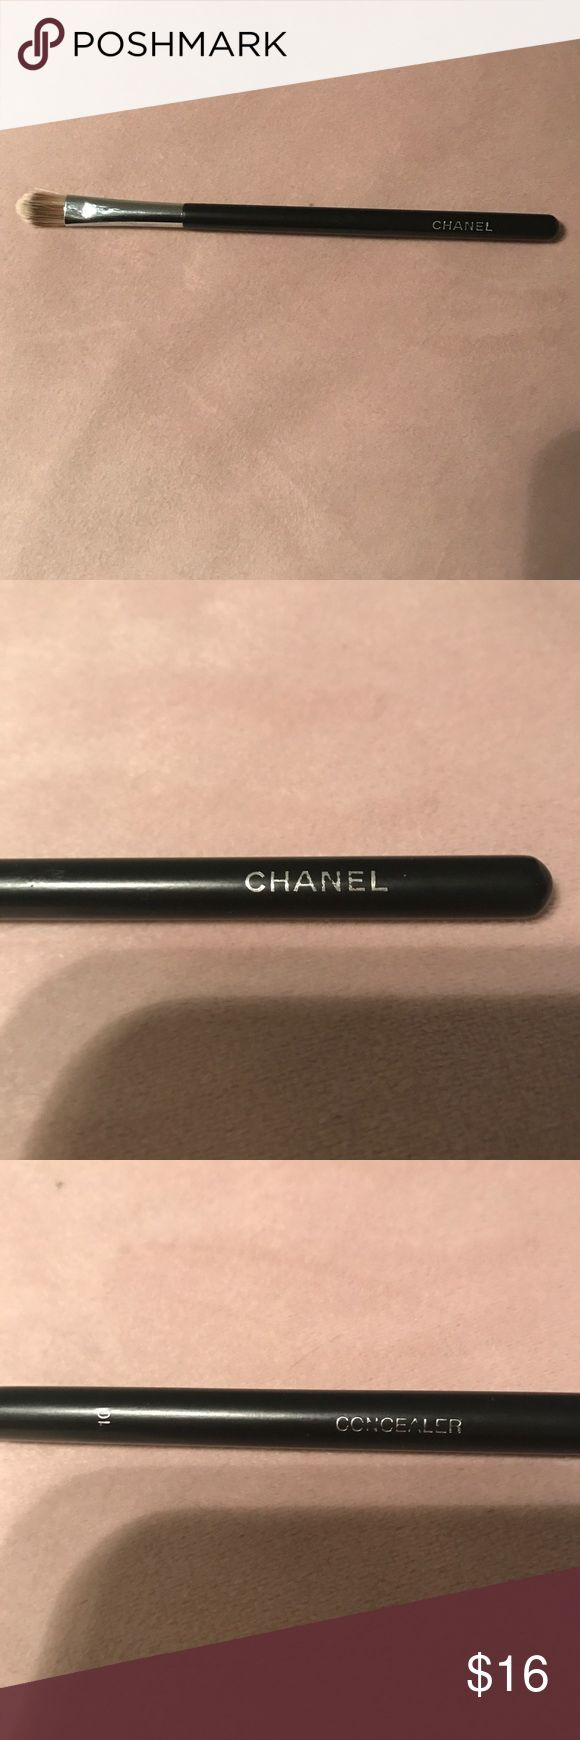 💥Authentic CHANEL Concealer Brush Never been used Chanel concealer brush. CHANEL Makeup Brushes & Tools